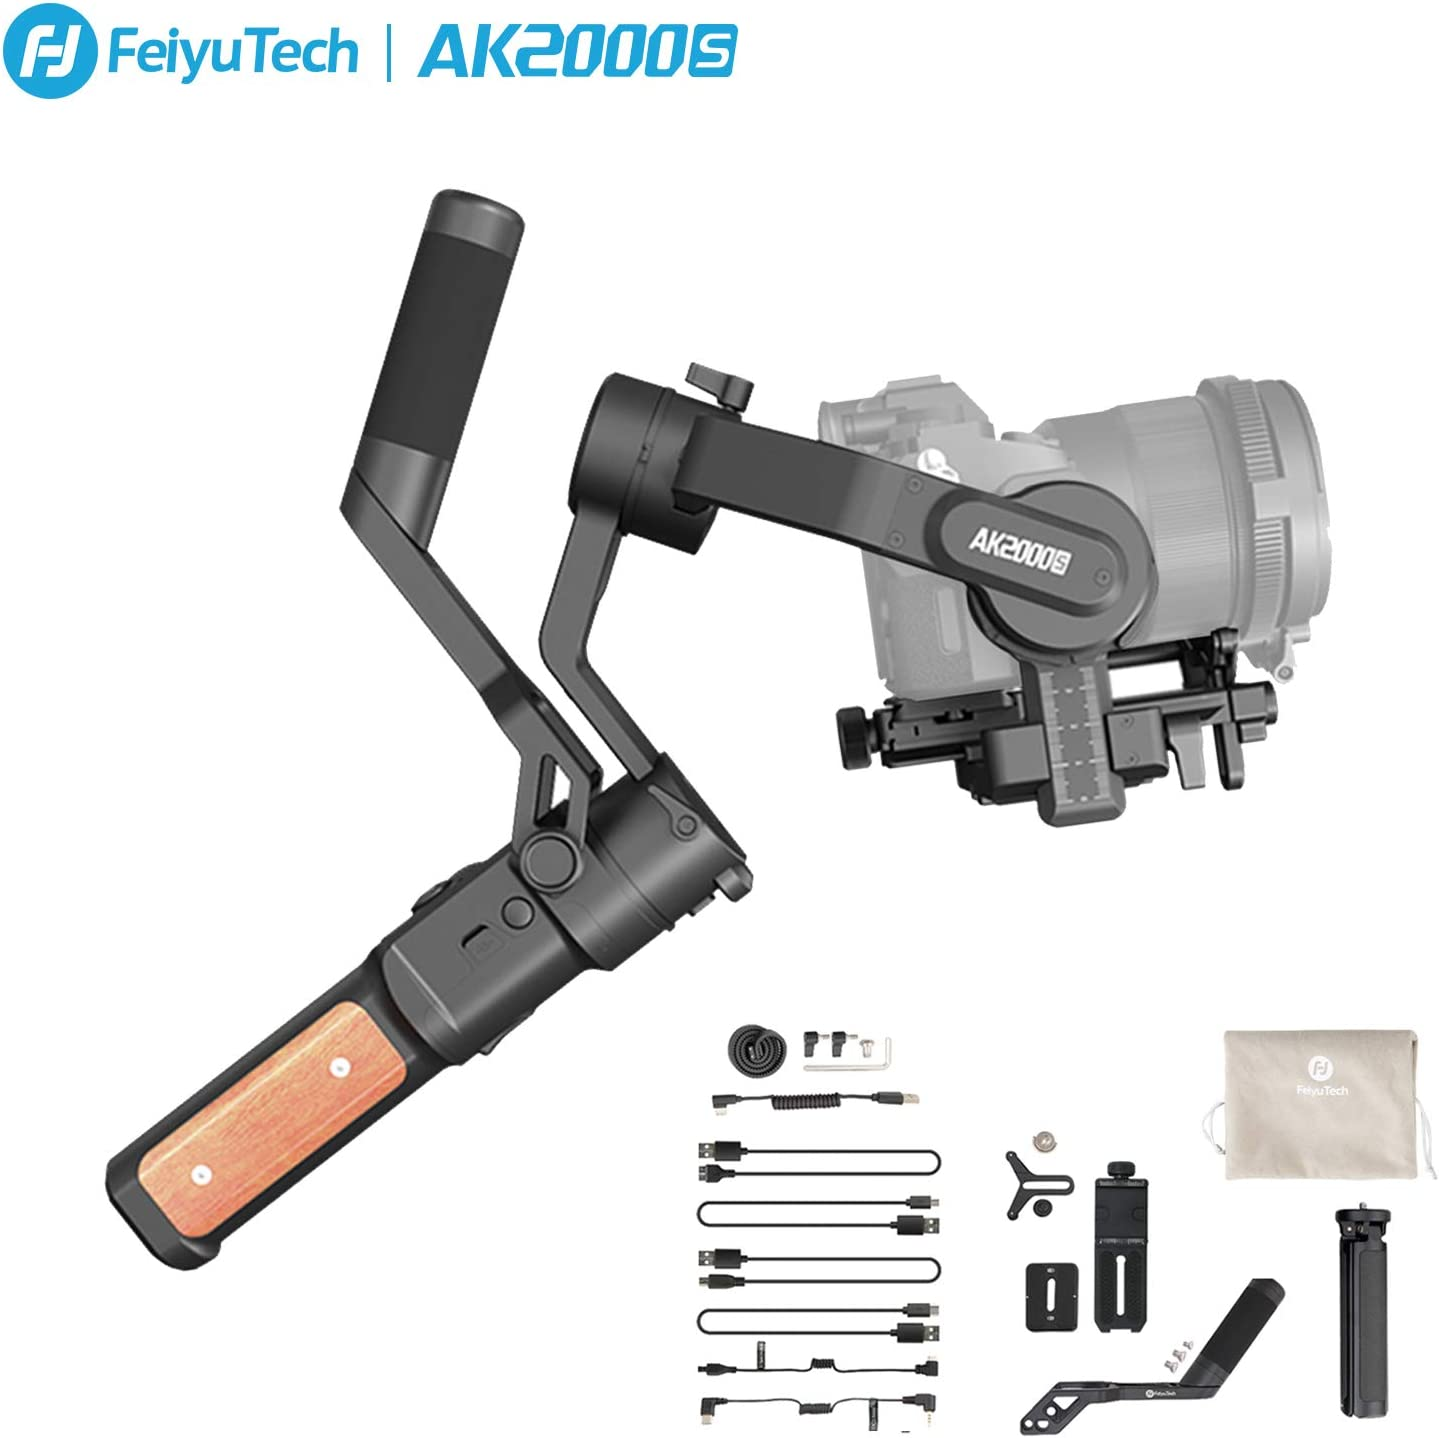 FeiyuTech AK2000s Handheld Gimbal Camera Stabilizer with Versatile Handle LCD Screen for DSLR Camera Sony a6300 a6400 a6500 Canon M50 EOS R Panasonic DC-GF9XGK DMC-LX100 Nikon Fujifilm